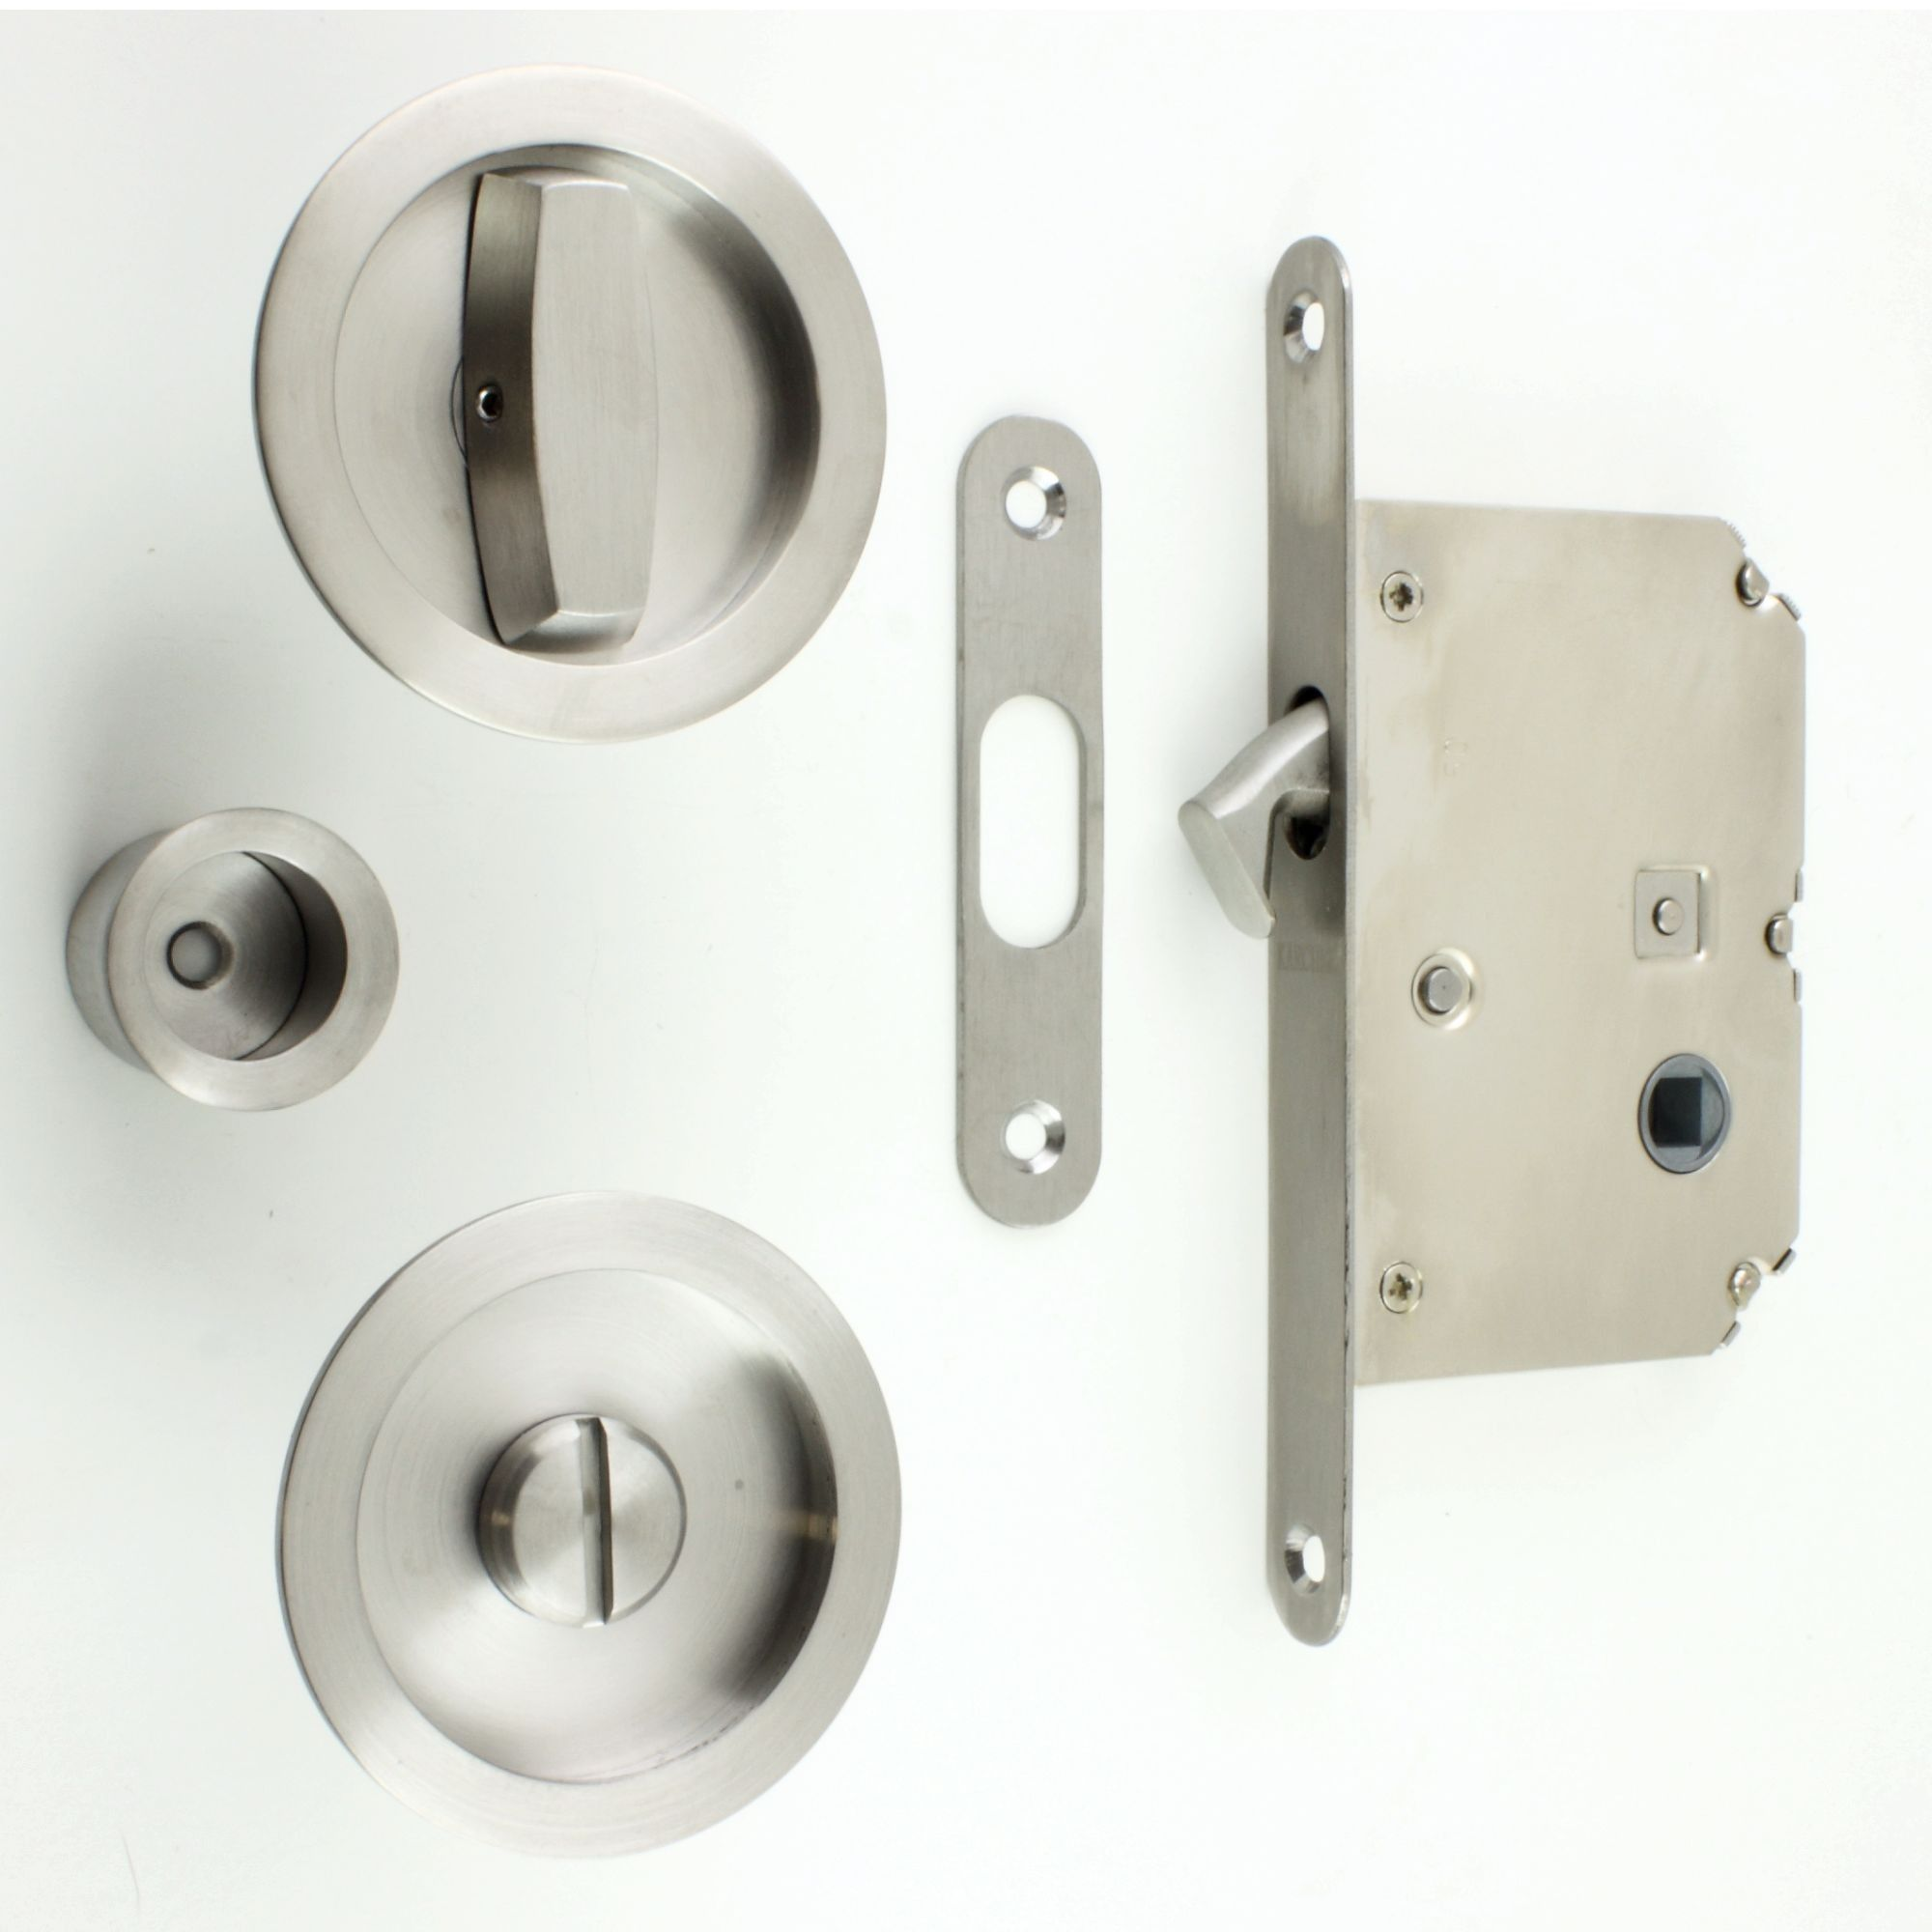 best double lock glass bar deadbolt doors closet types size locks for sliding full patio of door repair high security roller safety